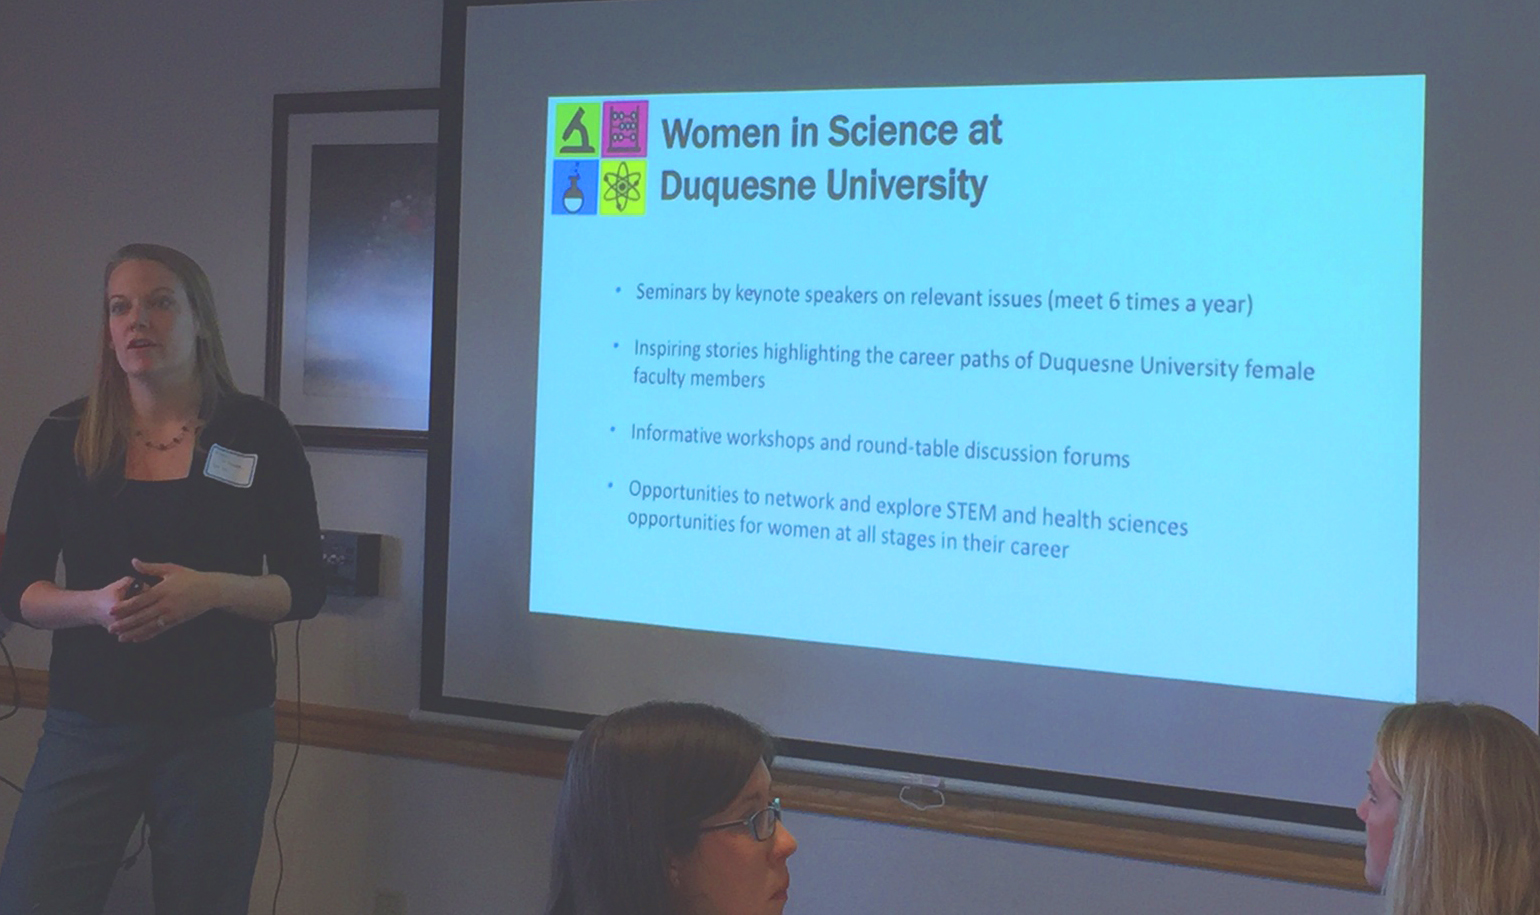 Dr. O'Donnell presents an overview of WIS@DU